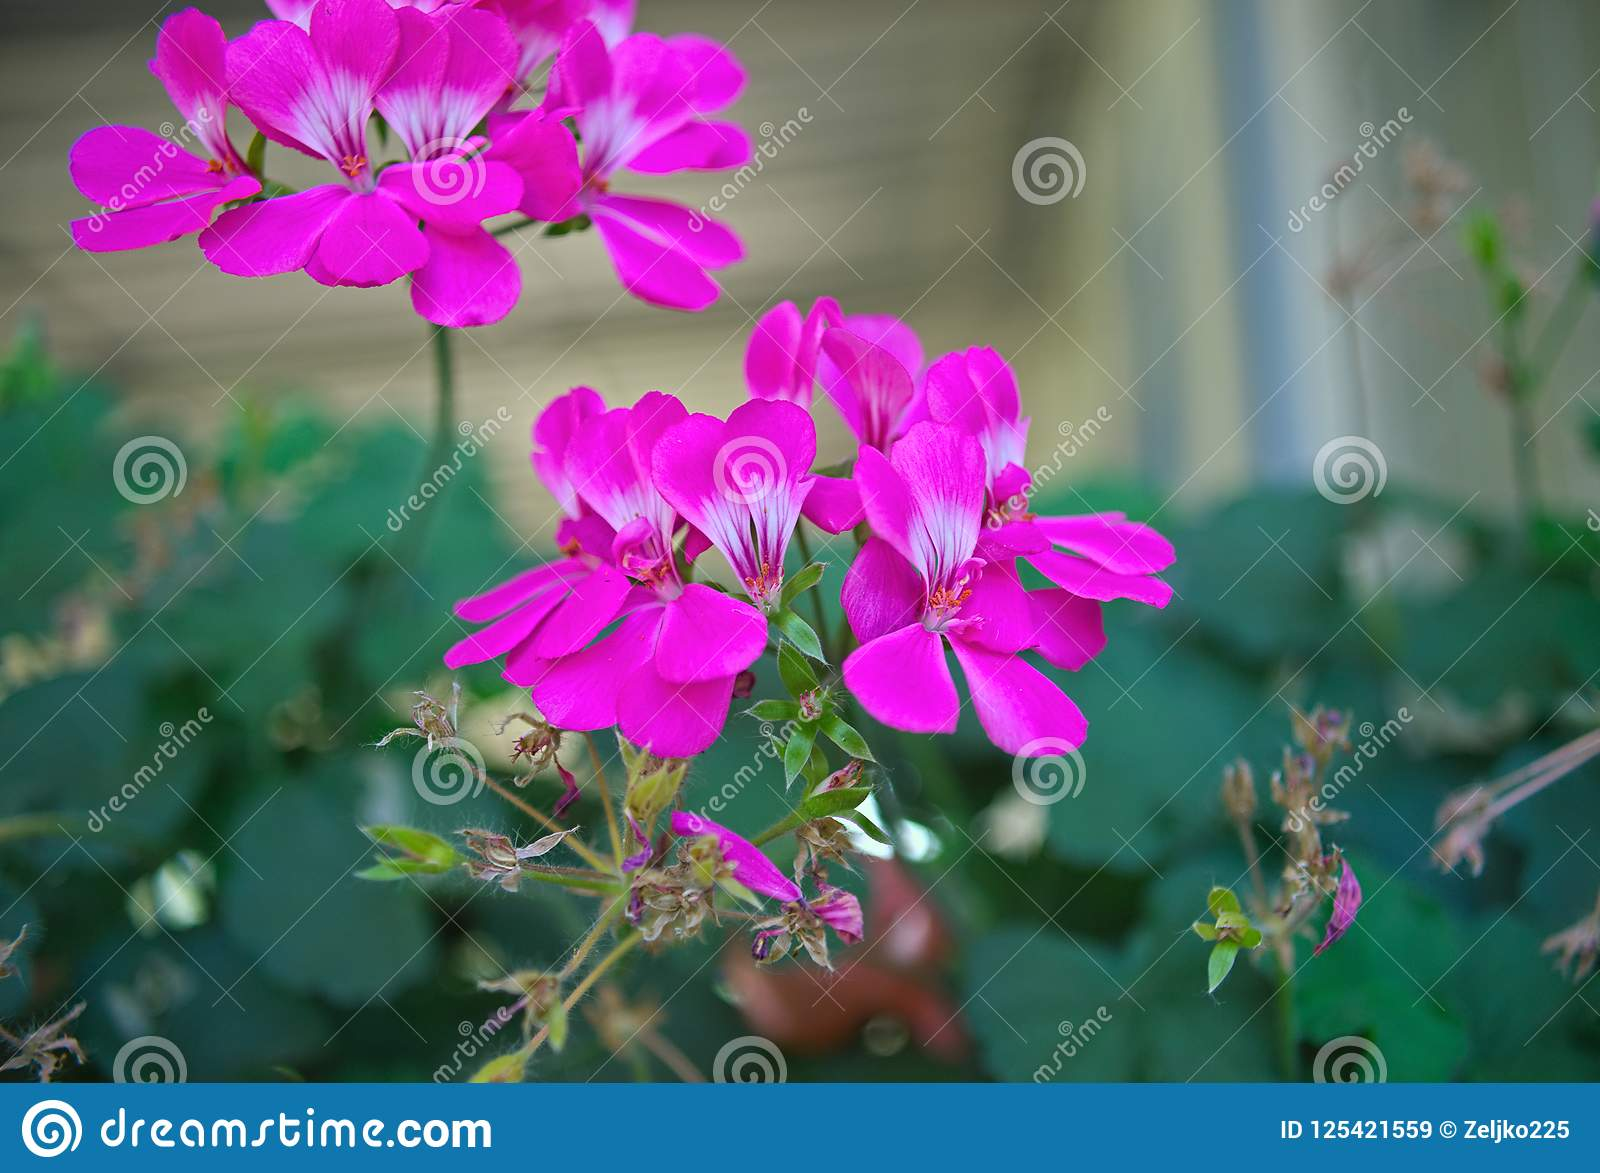 Small houseplant blooming with pink flowers closeup stock image download small houseplant blooming with pink flowers closeup stock image image of flower mightylinksfo